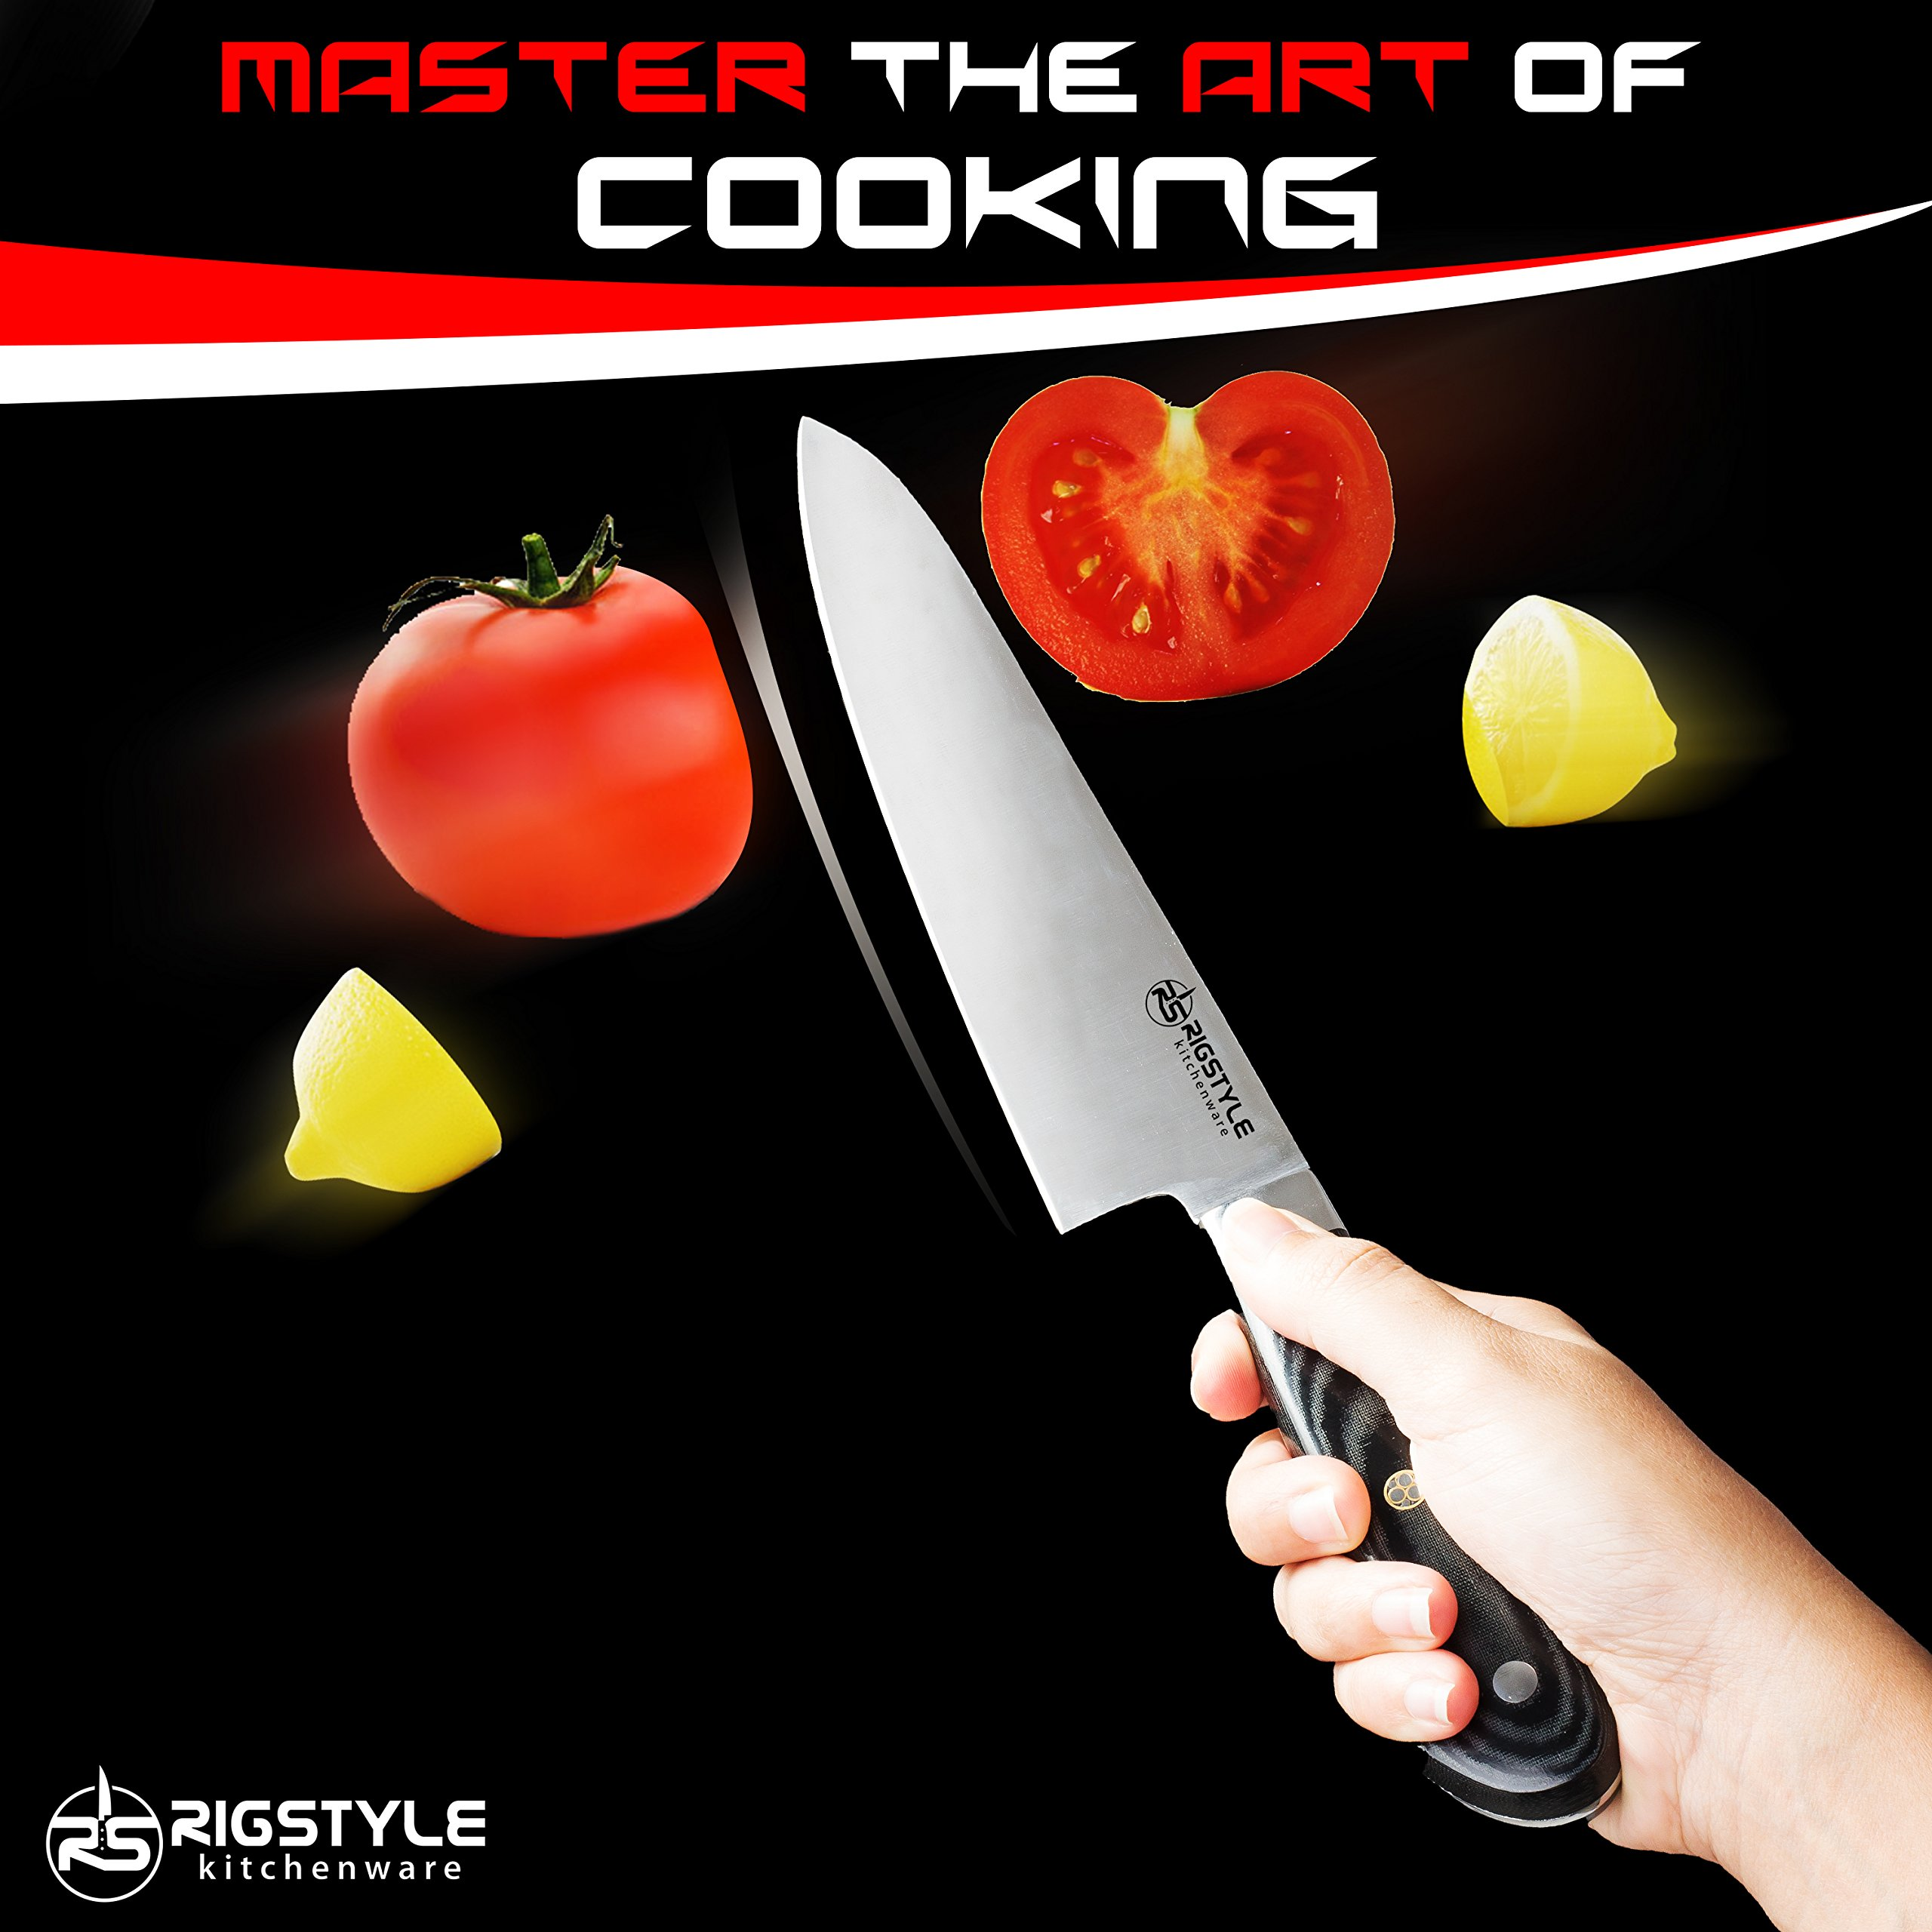 RIGSTYLE German Chef Knife 8 inch, High Carbon Stainless Steel, Sharp Blade with Ergonomic Handle for Professional Restaurants & Home Kitchens, Meat, Fish, Chicken & Vegetables Chopper, with Gift Box by RIGSTYLE (Image #9)